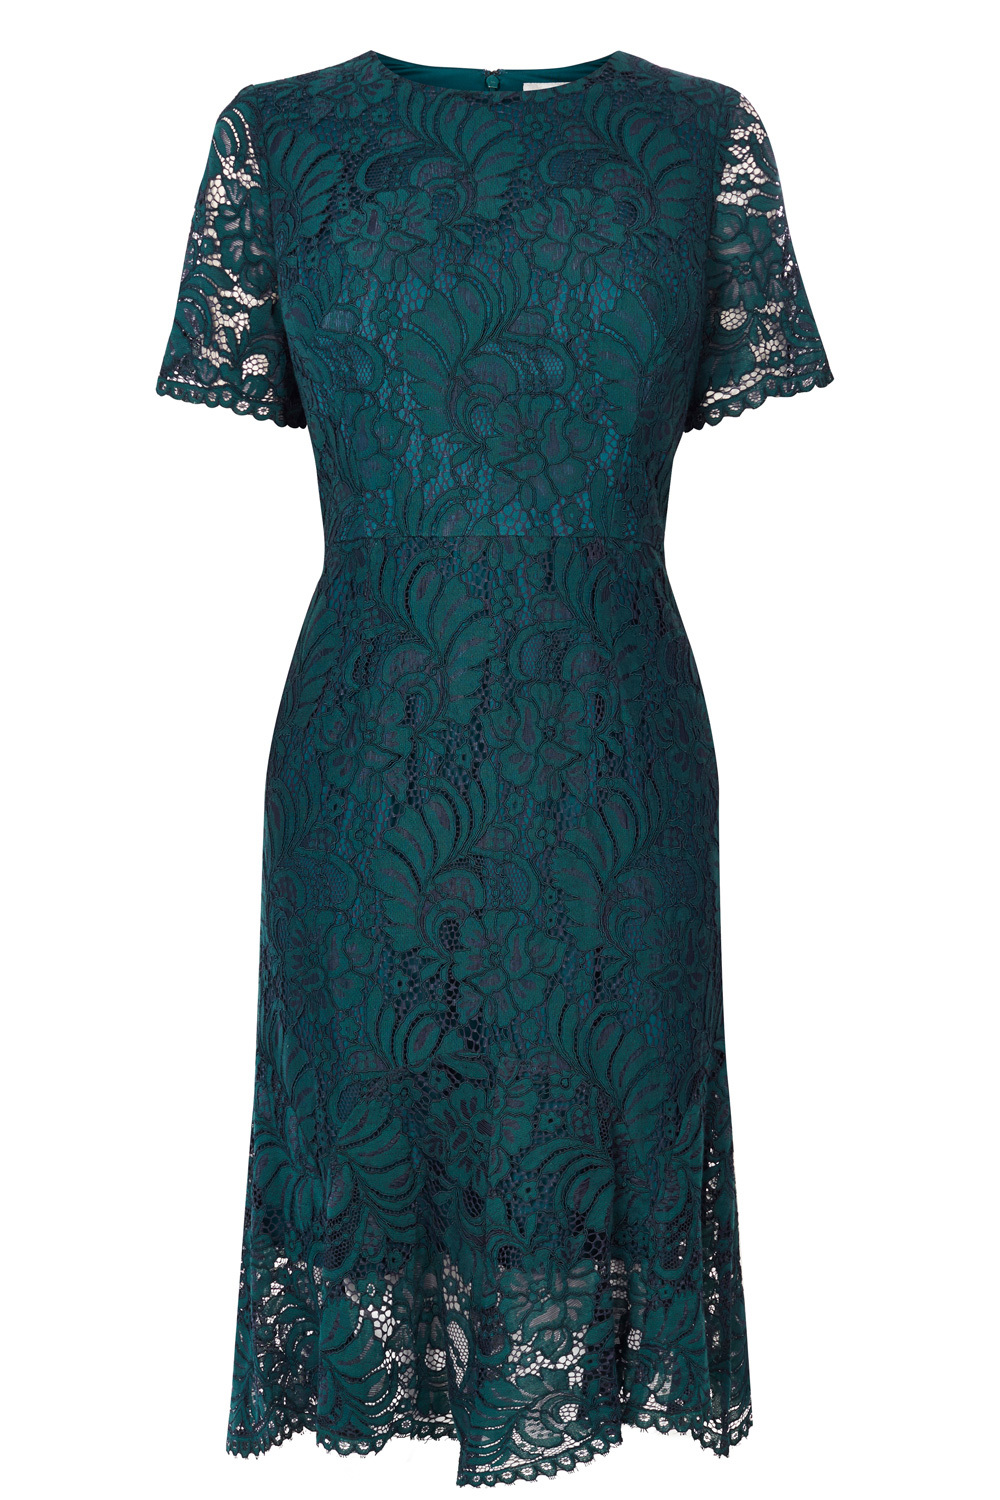 Linera Lace Dress - length: below the knee; pattern: plain; predominant colour: teal; occasions: evening; fit: fitted at waist & bust; style: fit & flare; fibres: nylon - mix; neckline: crew; sleeve length: short sleeve; sleeve style: standard; texture group: lace; pattern type: fabric; season: a/w 2016